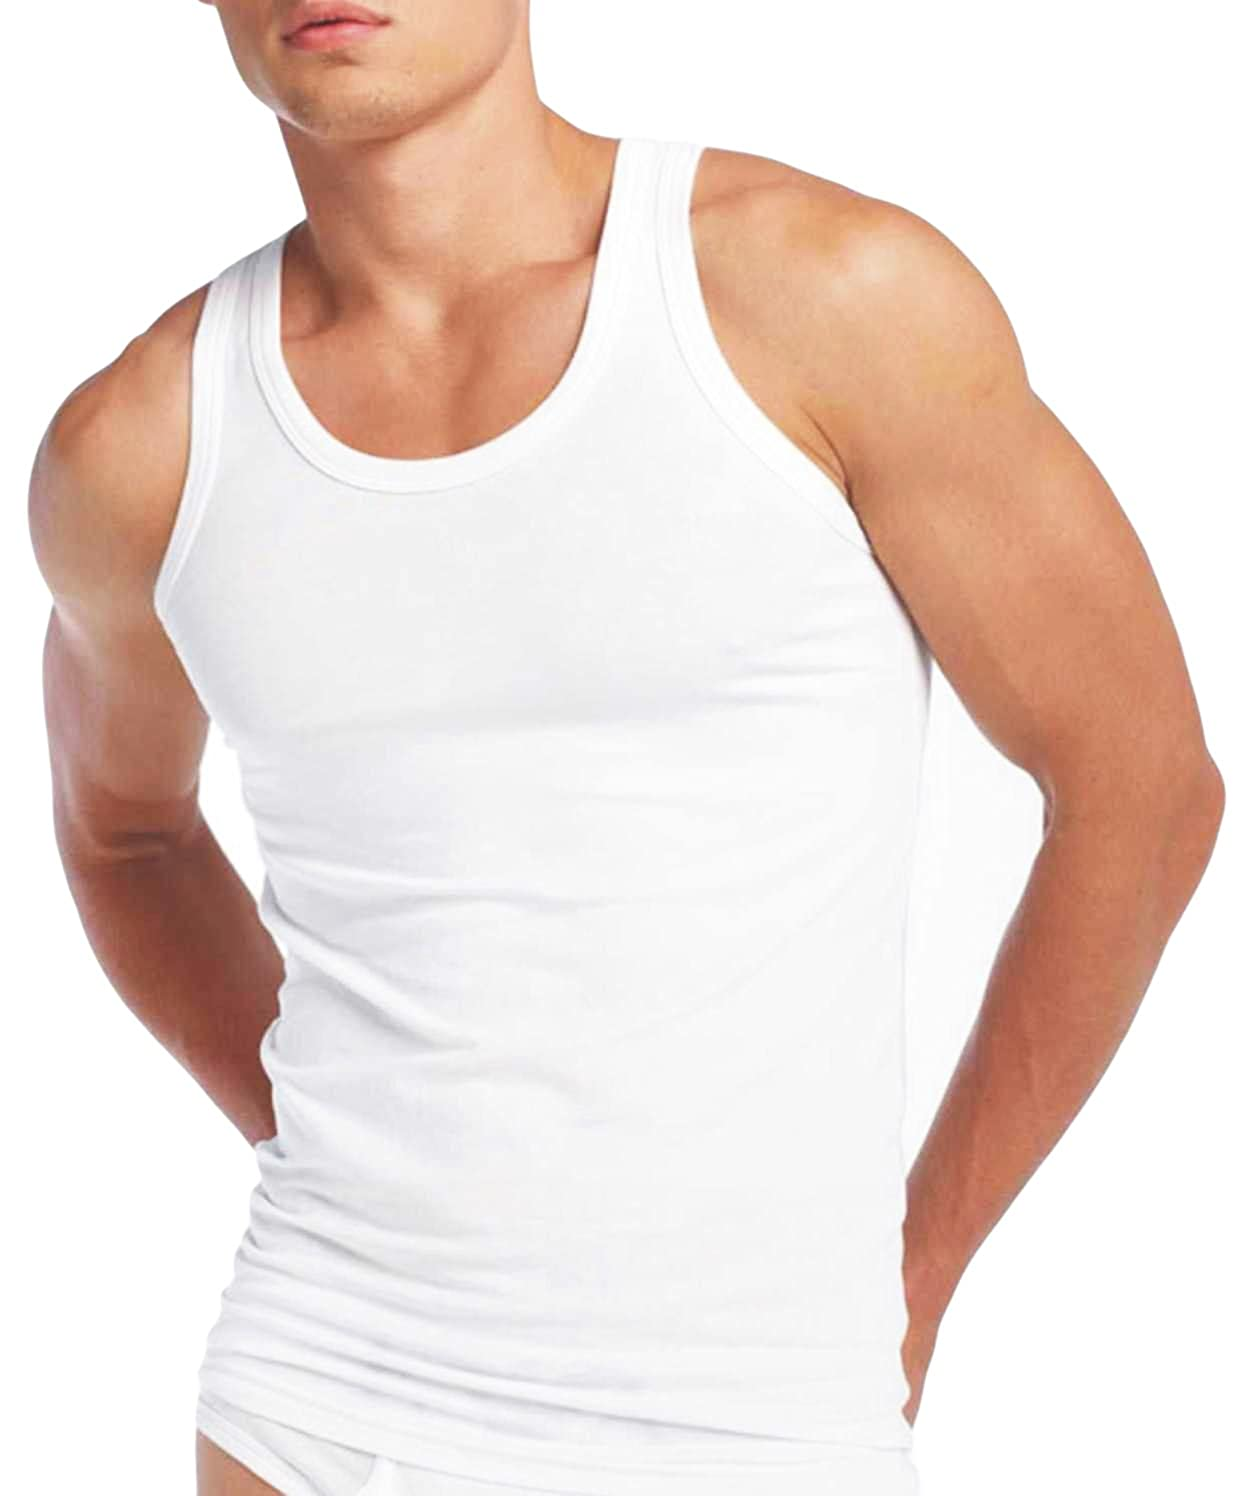 9eeadfb7f420d Mens Fitted Vest 100% Cotton Athletic Muscle Gym White Tank Top PACK OF 3   Amazon.co.uk  Clothing